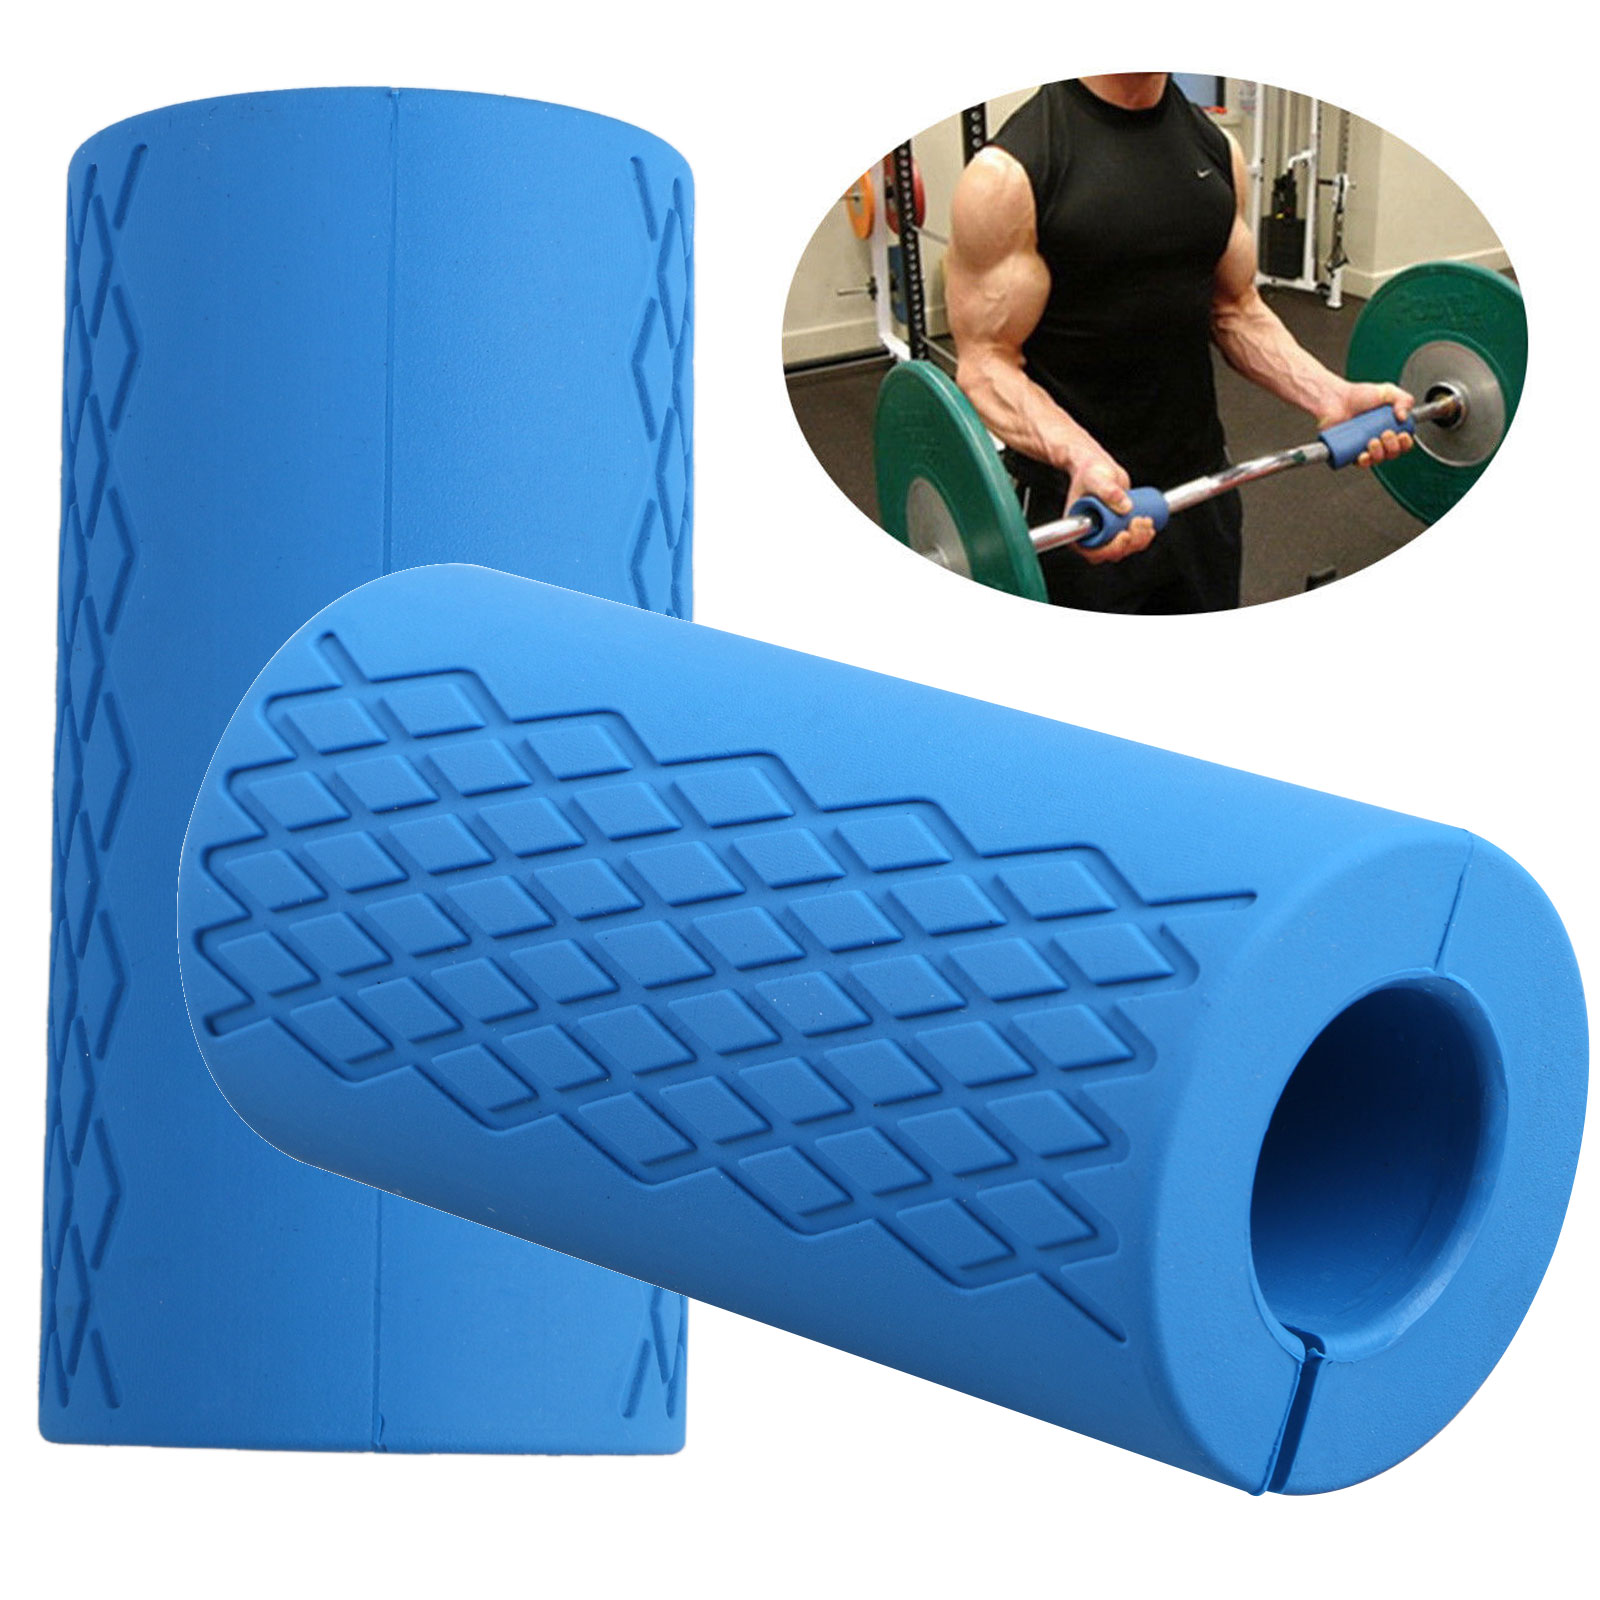 Barbell Dumbbell Grips-Made from Comfortable and Durable Non-Slip Silicone Rubber Easily Attachable to Any Bar Manufactured